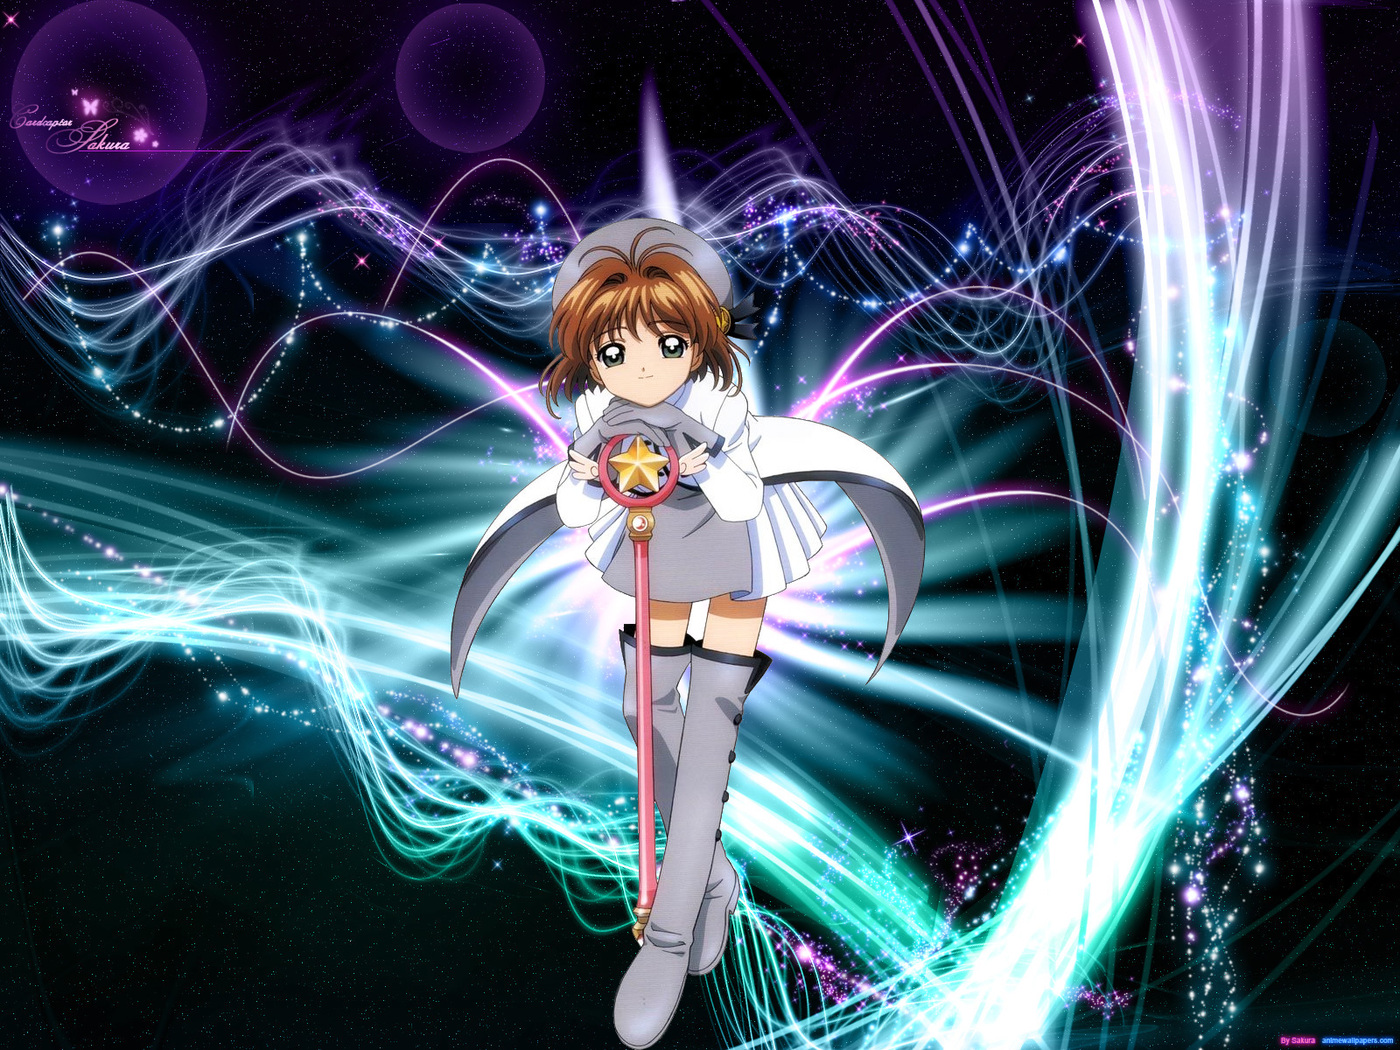 Card Captor Sakura Anime Wallpaper # 112